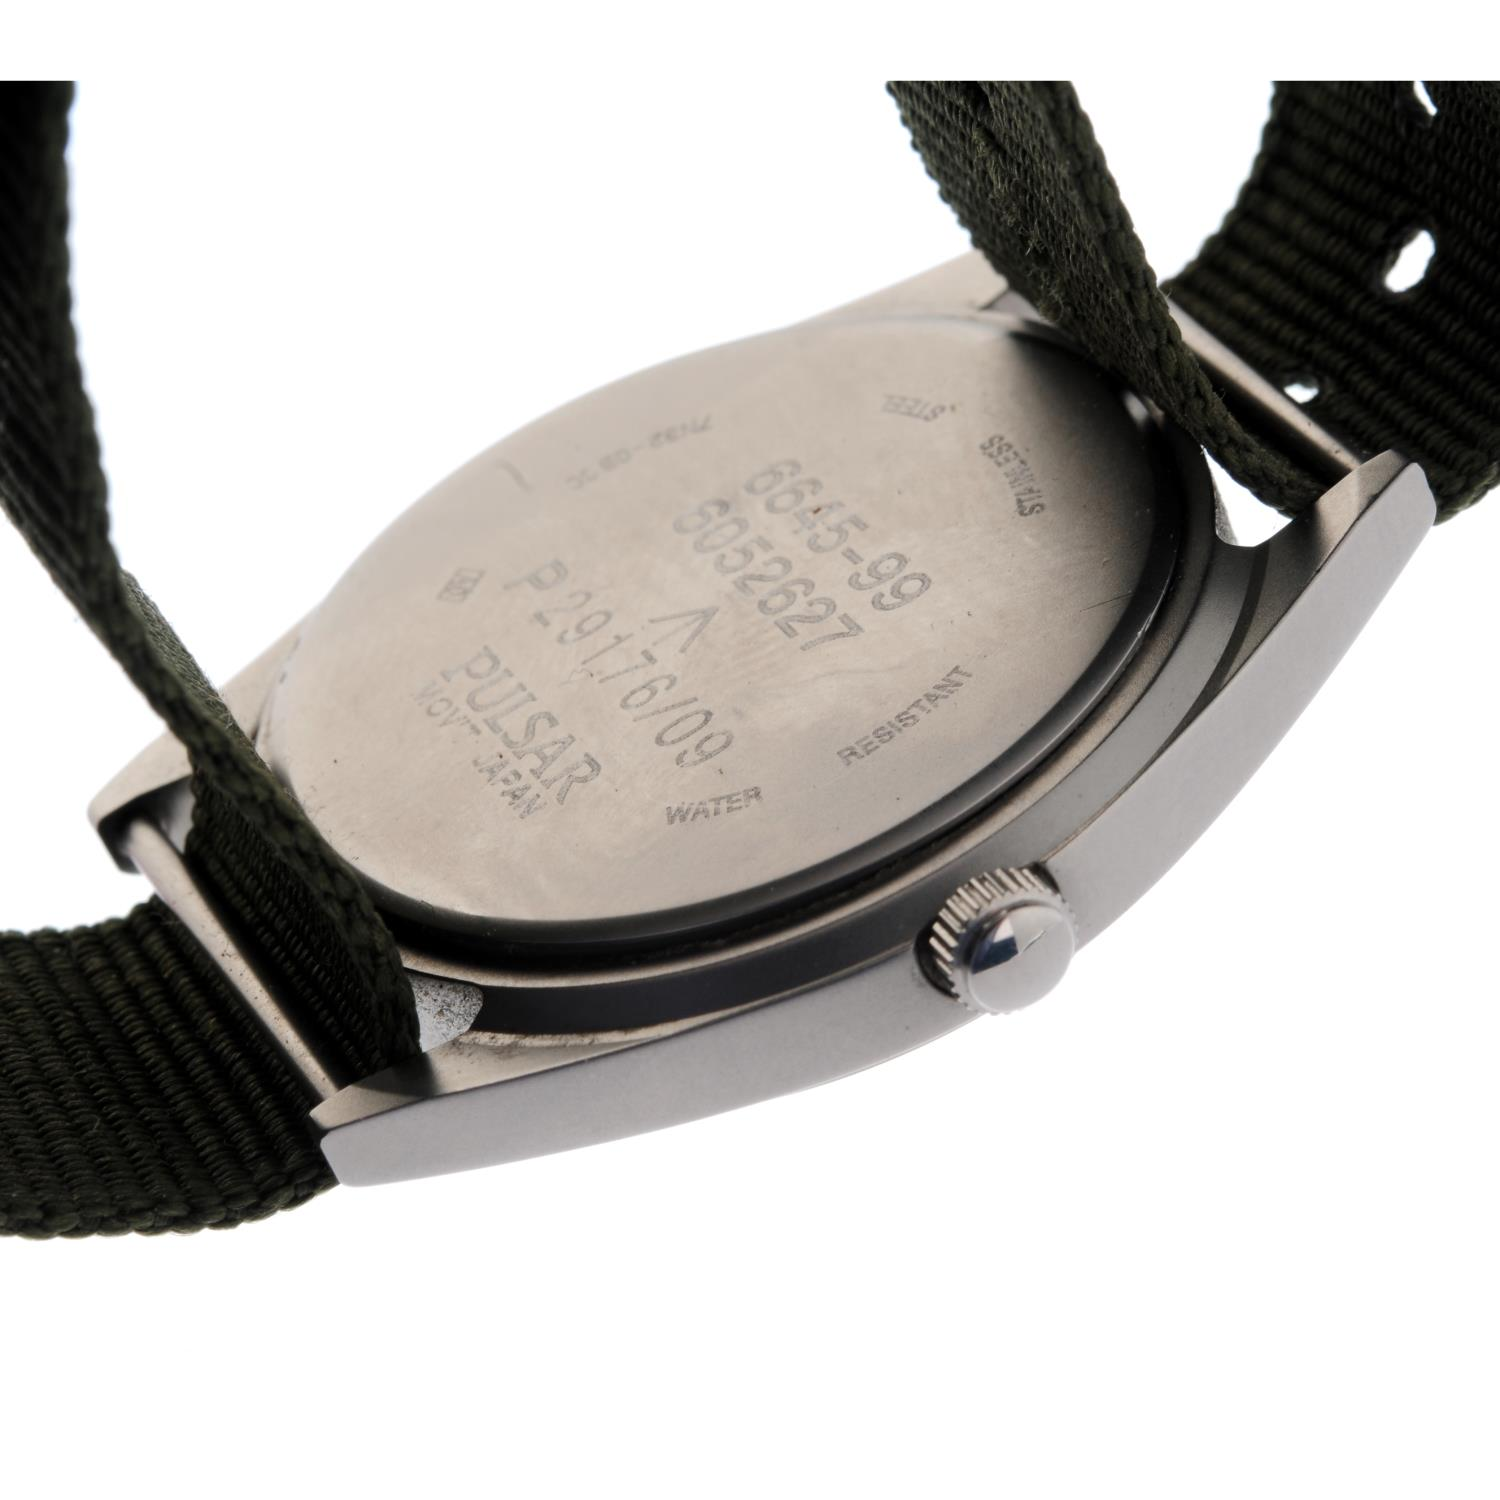 PULSAR - a military issue wrist watch,. - Image 4 of 4